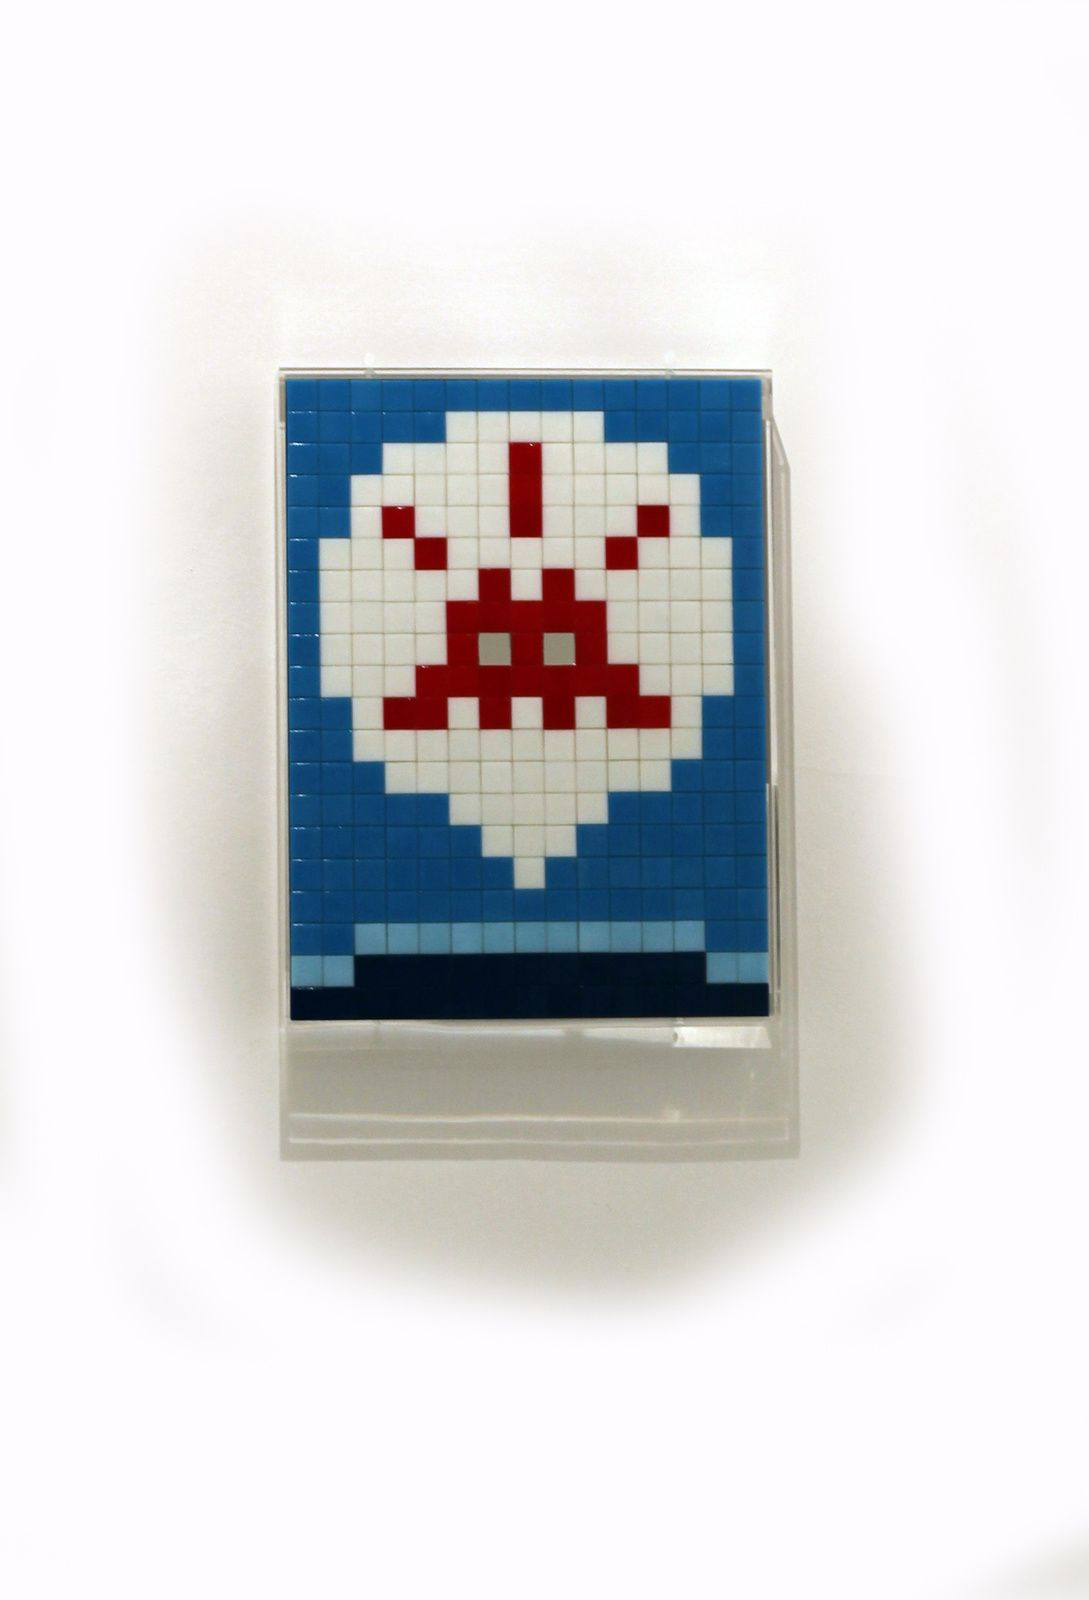 SPACE INVADER - Courtesy Galerie Laurent Strouk © Photo Éric Simon